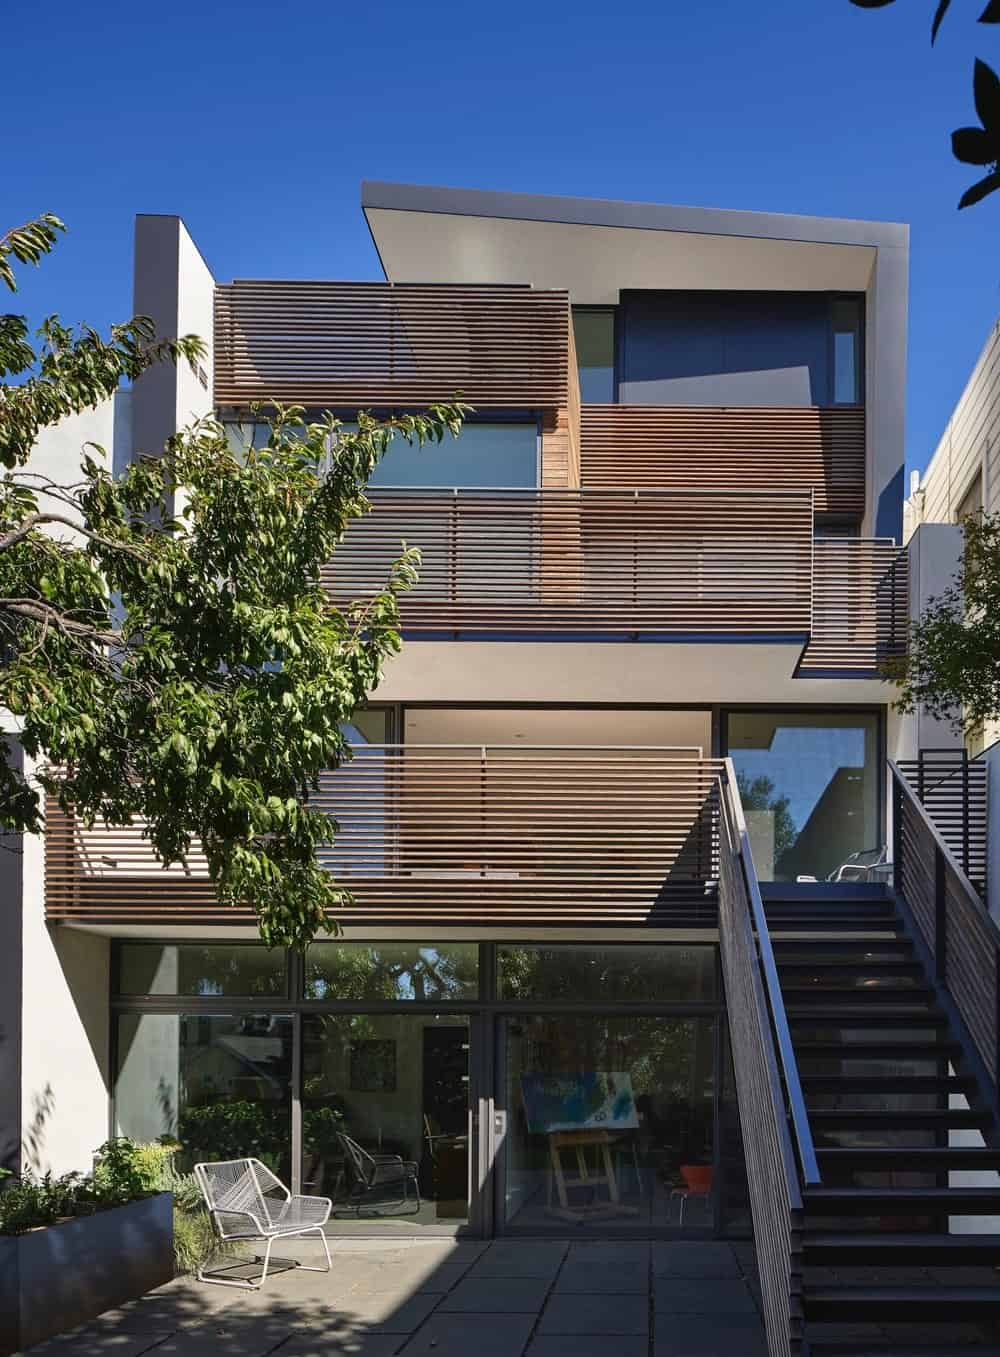 Rear exterior view of the House on Hillside designed by Terry & Terry Architecture.